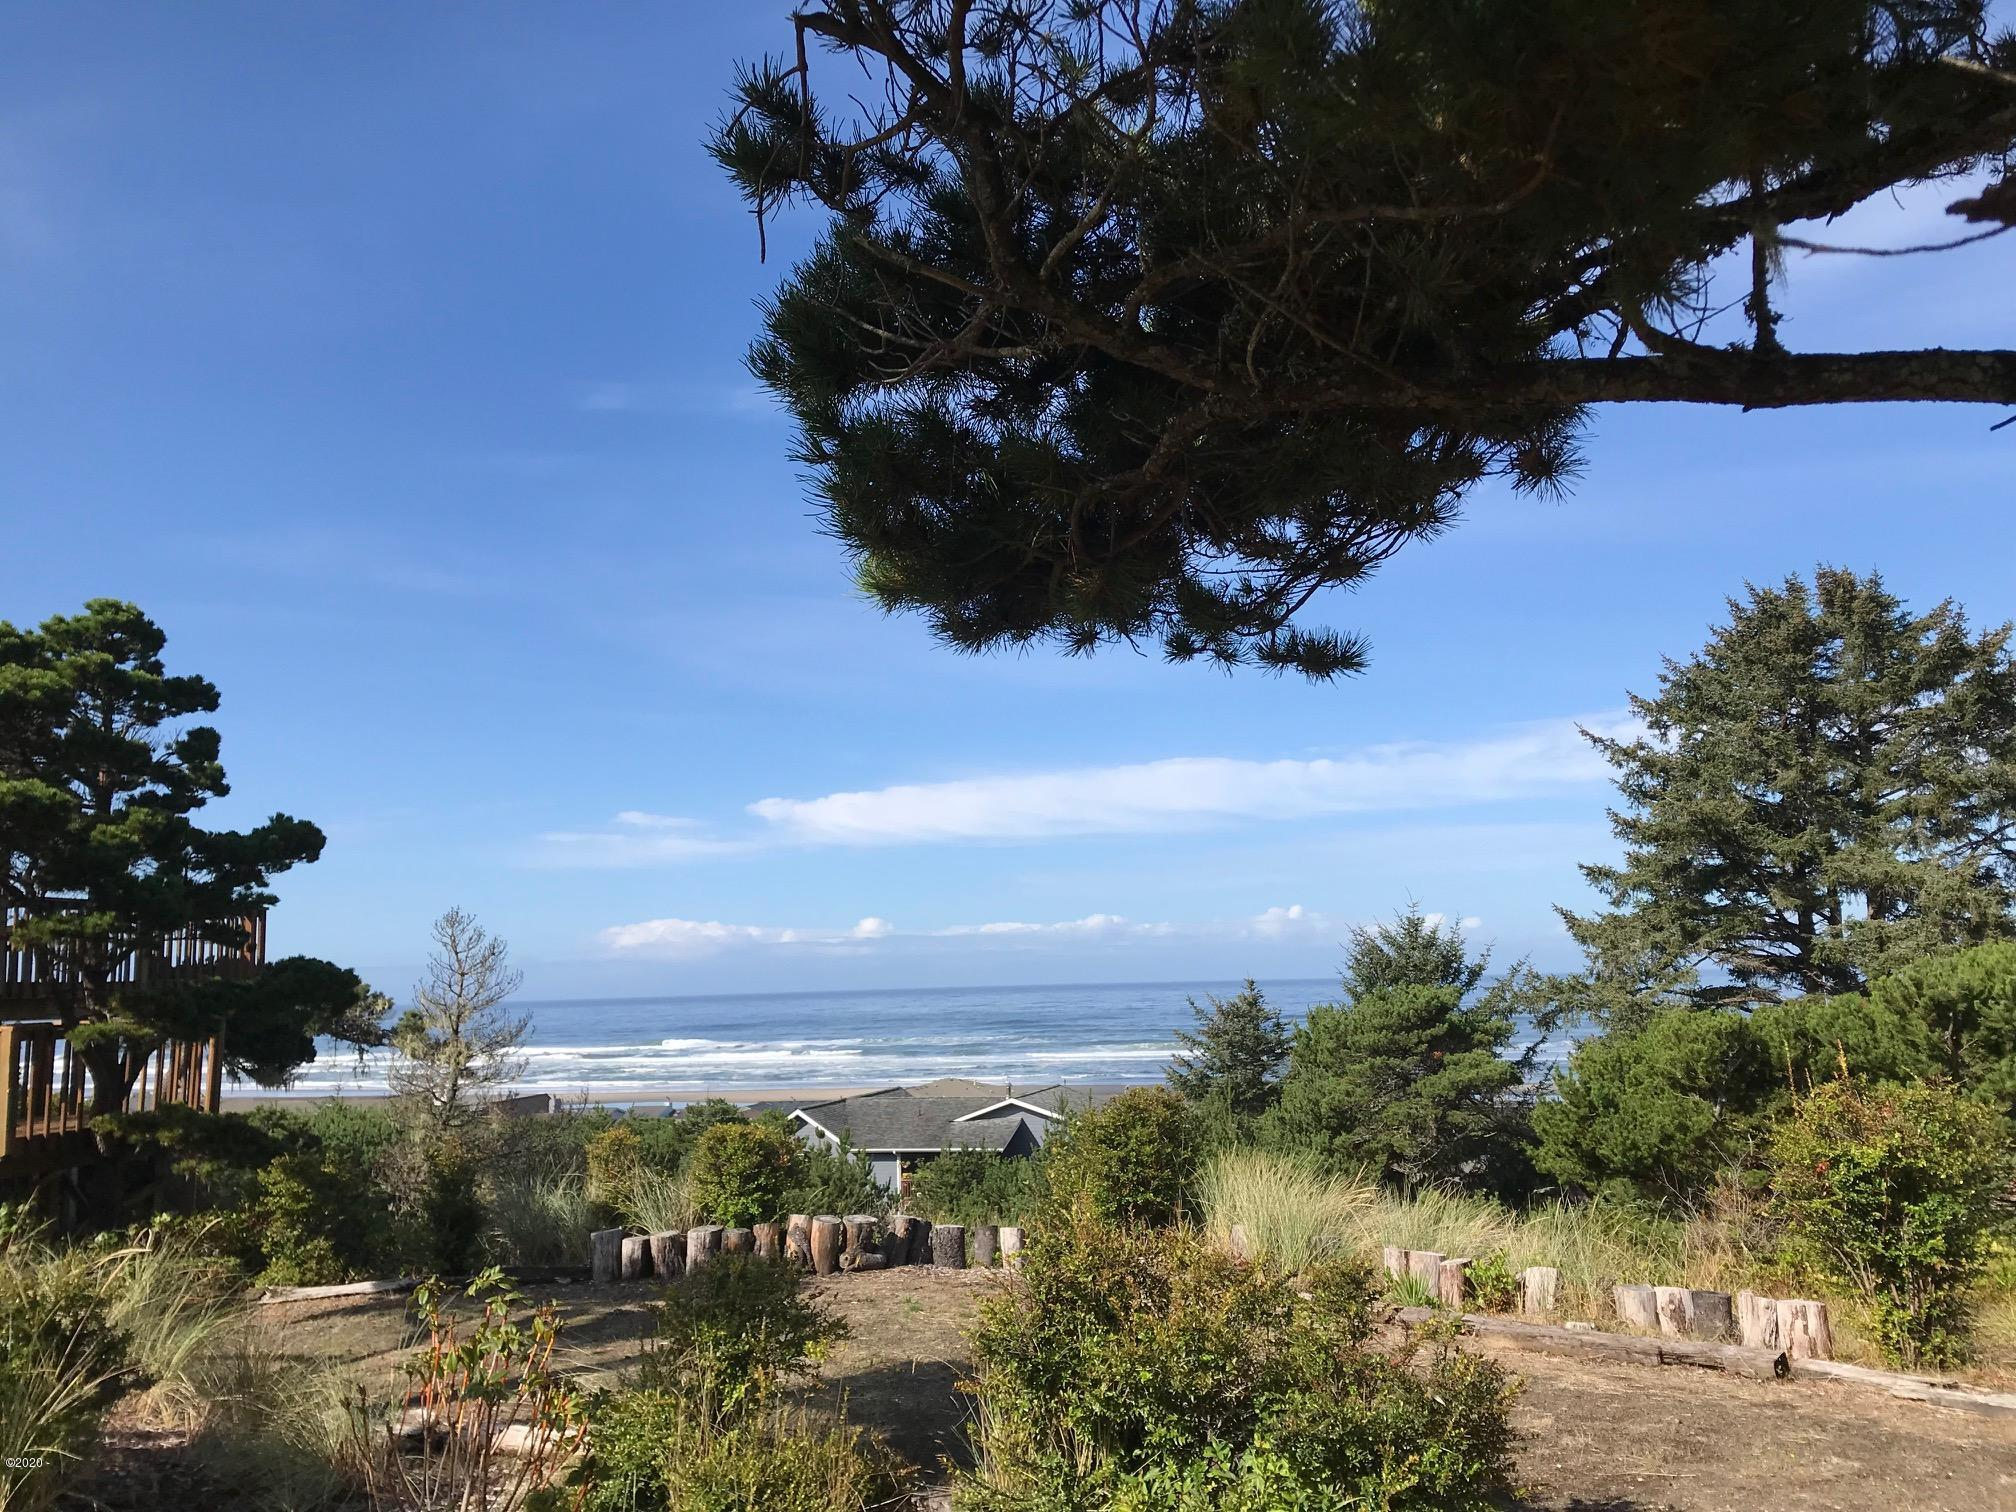 3204 NW Sandpiper Way, Waldport, OR 97394 - View from property